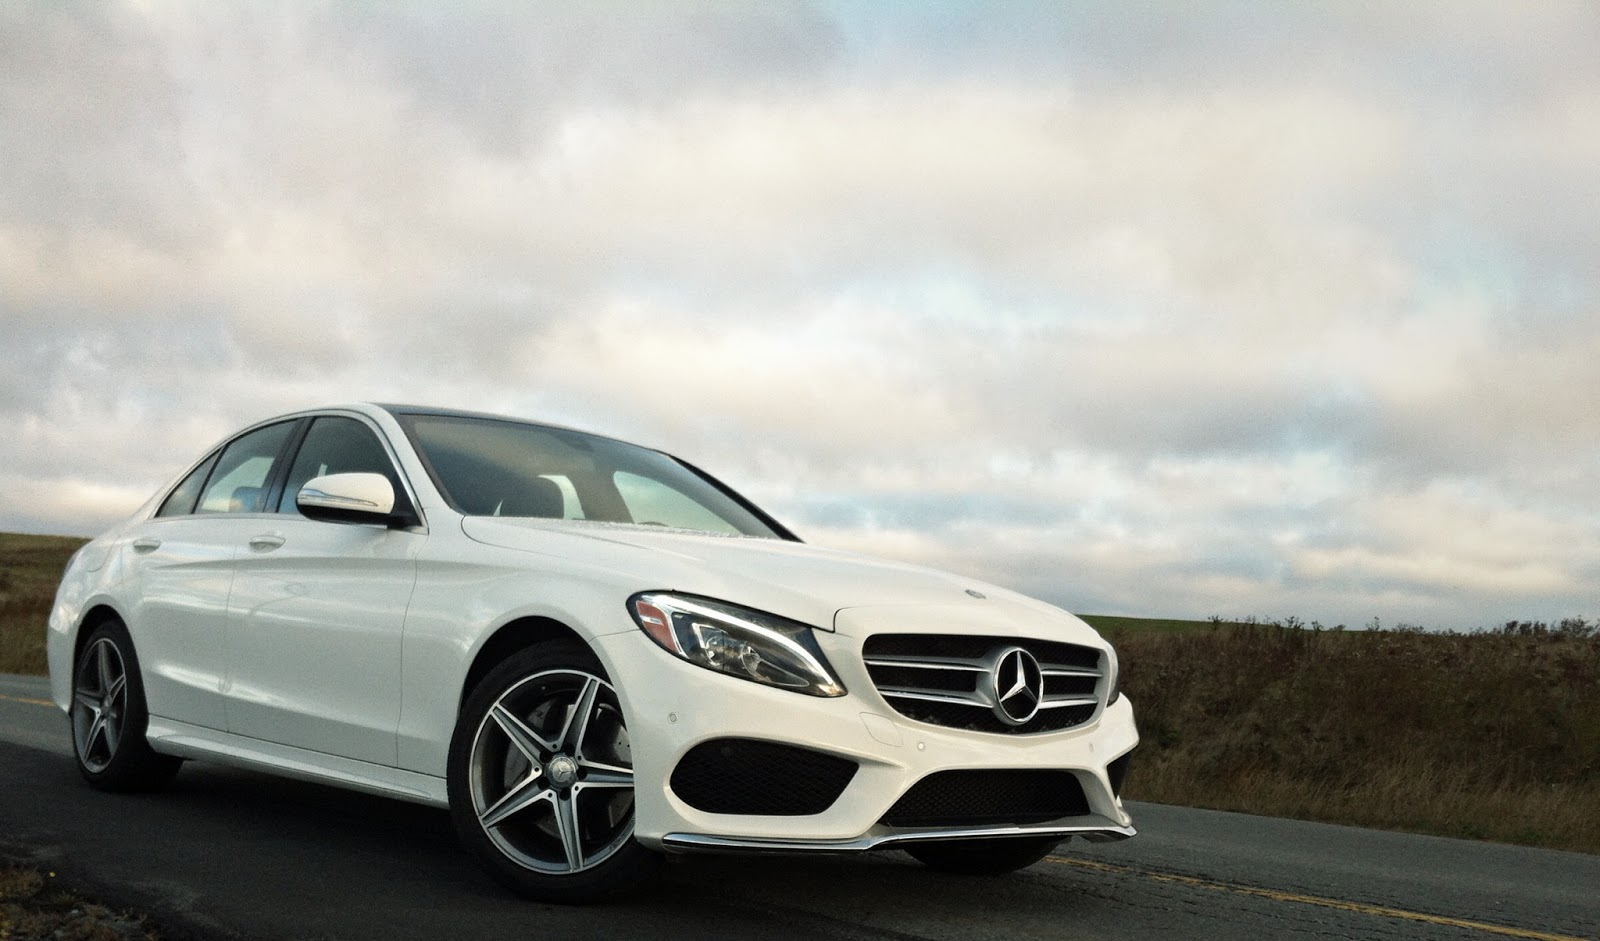 2015 Mercedes-Benz C400 4Matic white